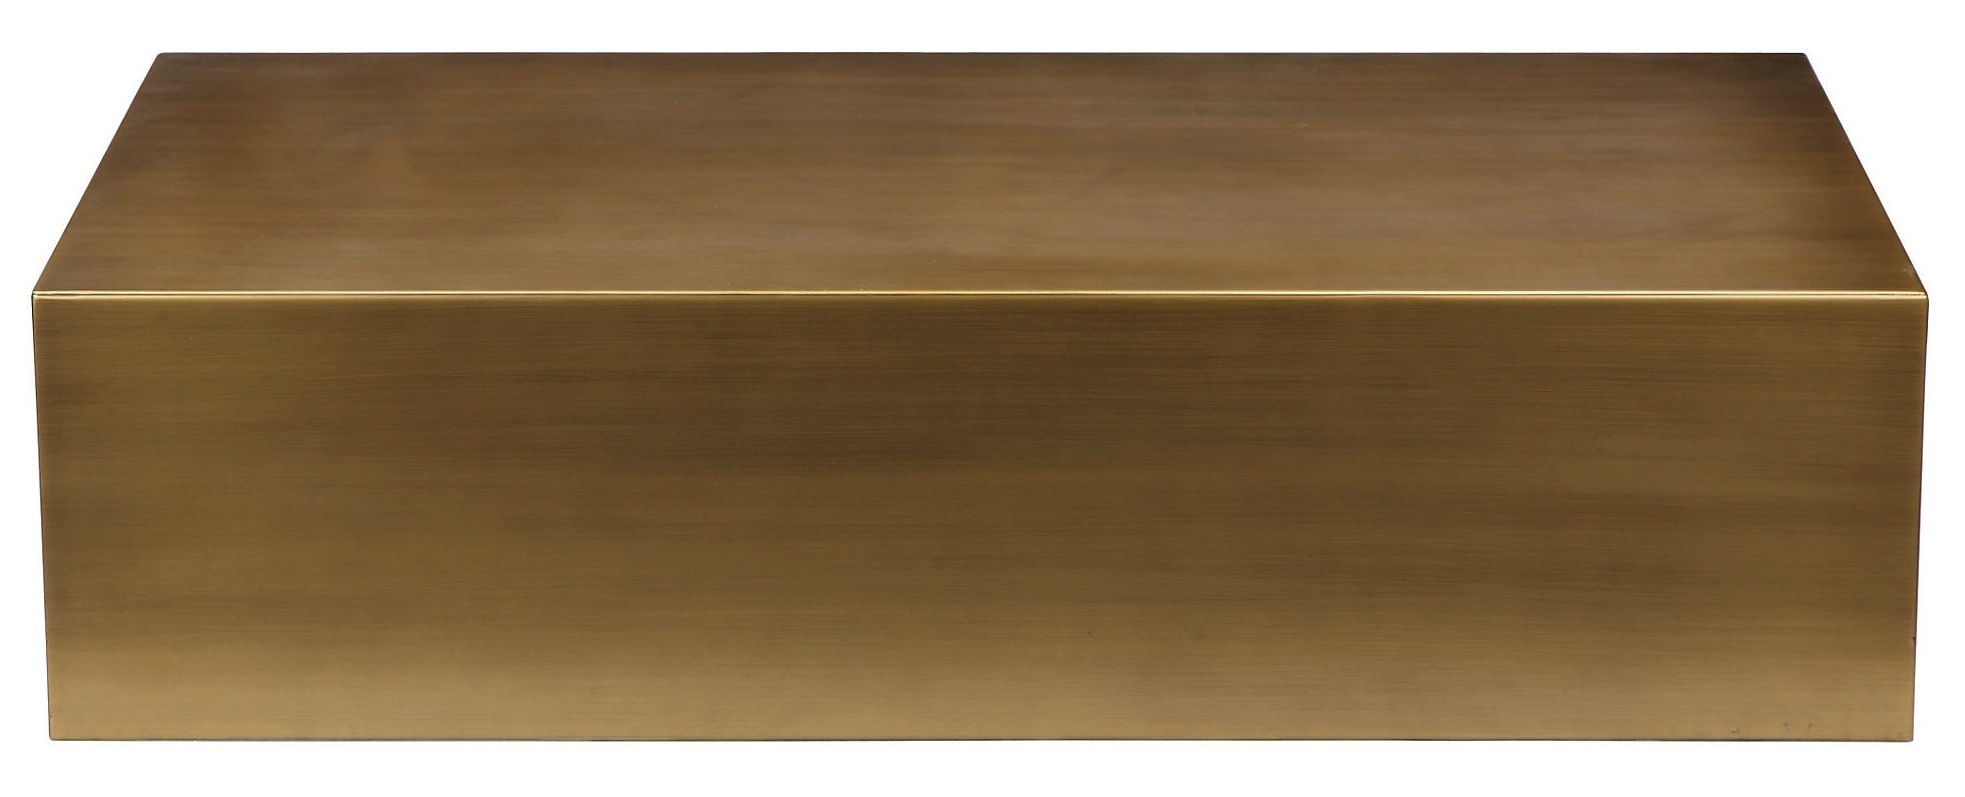 cube-coffee-table-in-brass-copy.jpg